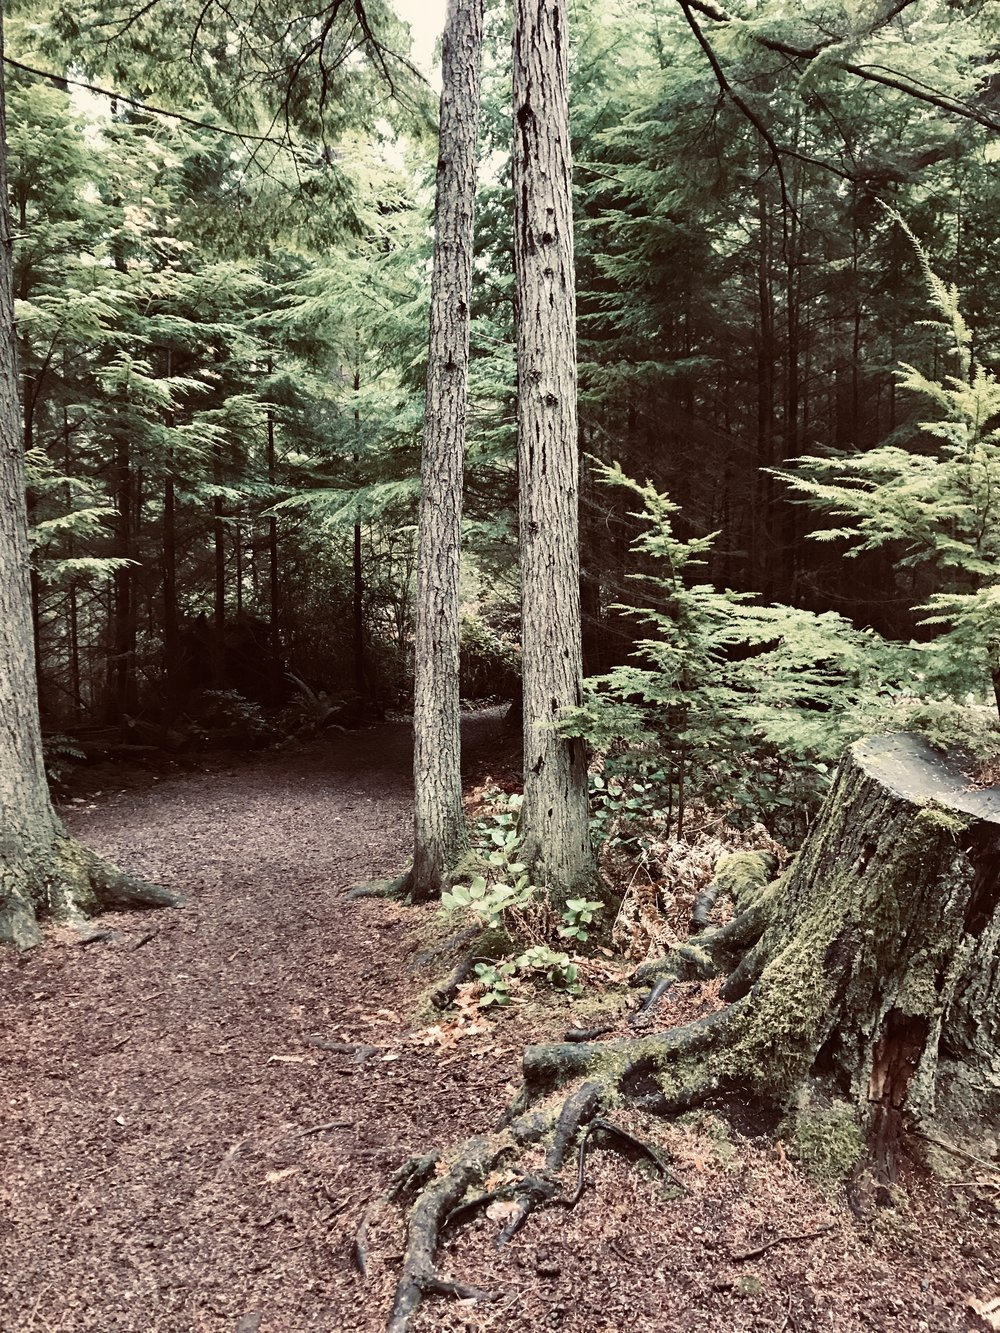 Actual trail in the vicinity of the Wild Running Woodsman by Miranda Brumbaugh